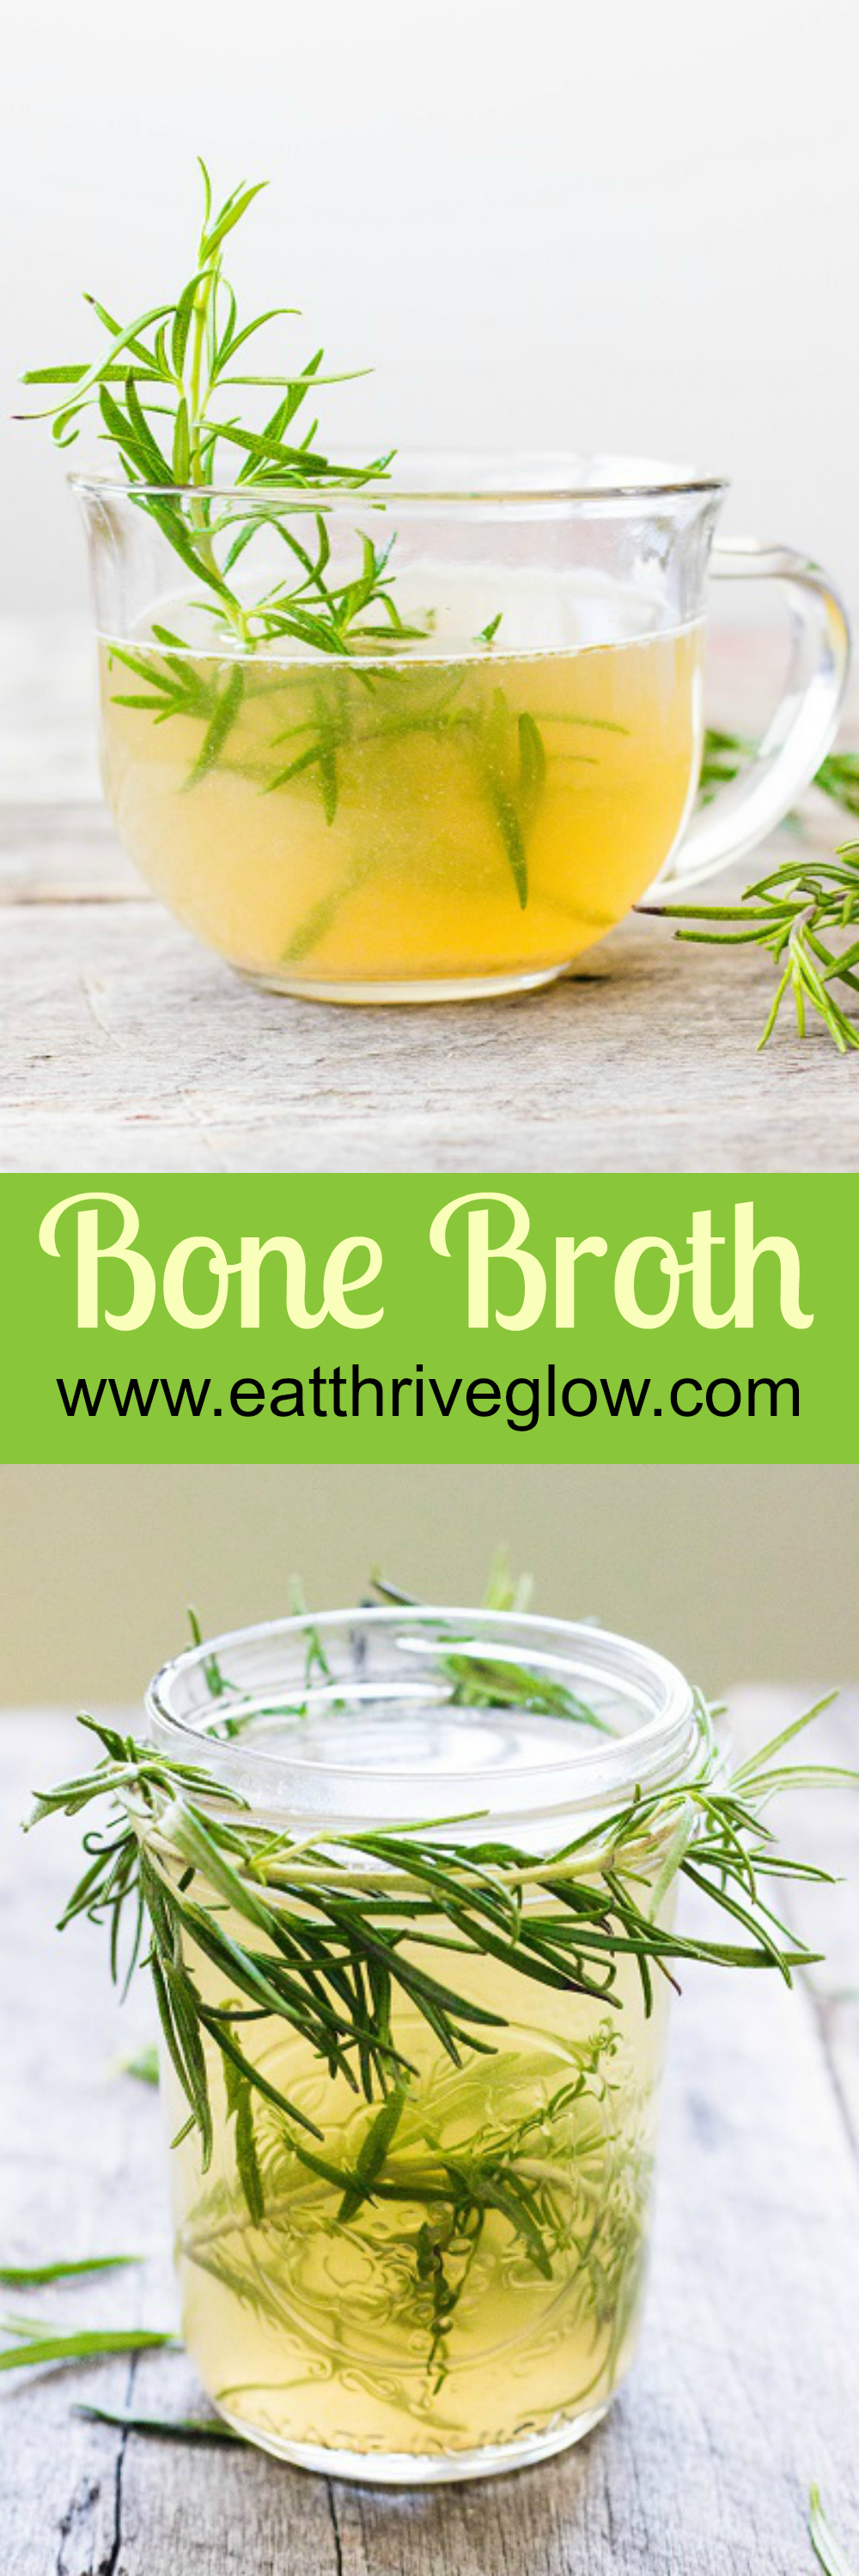 Bone Broth - Eat Thrive Glow